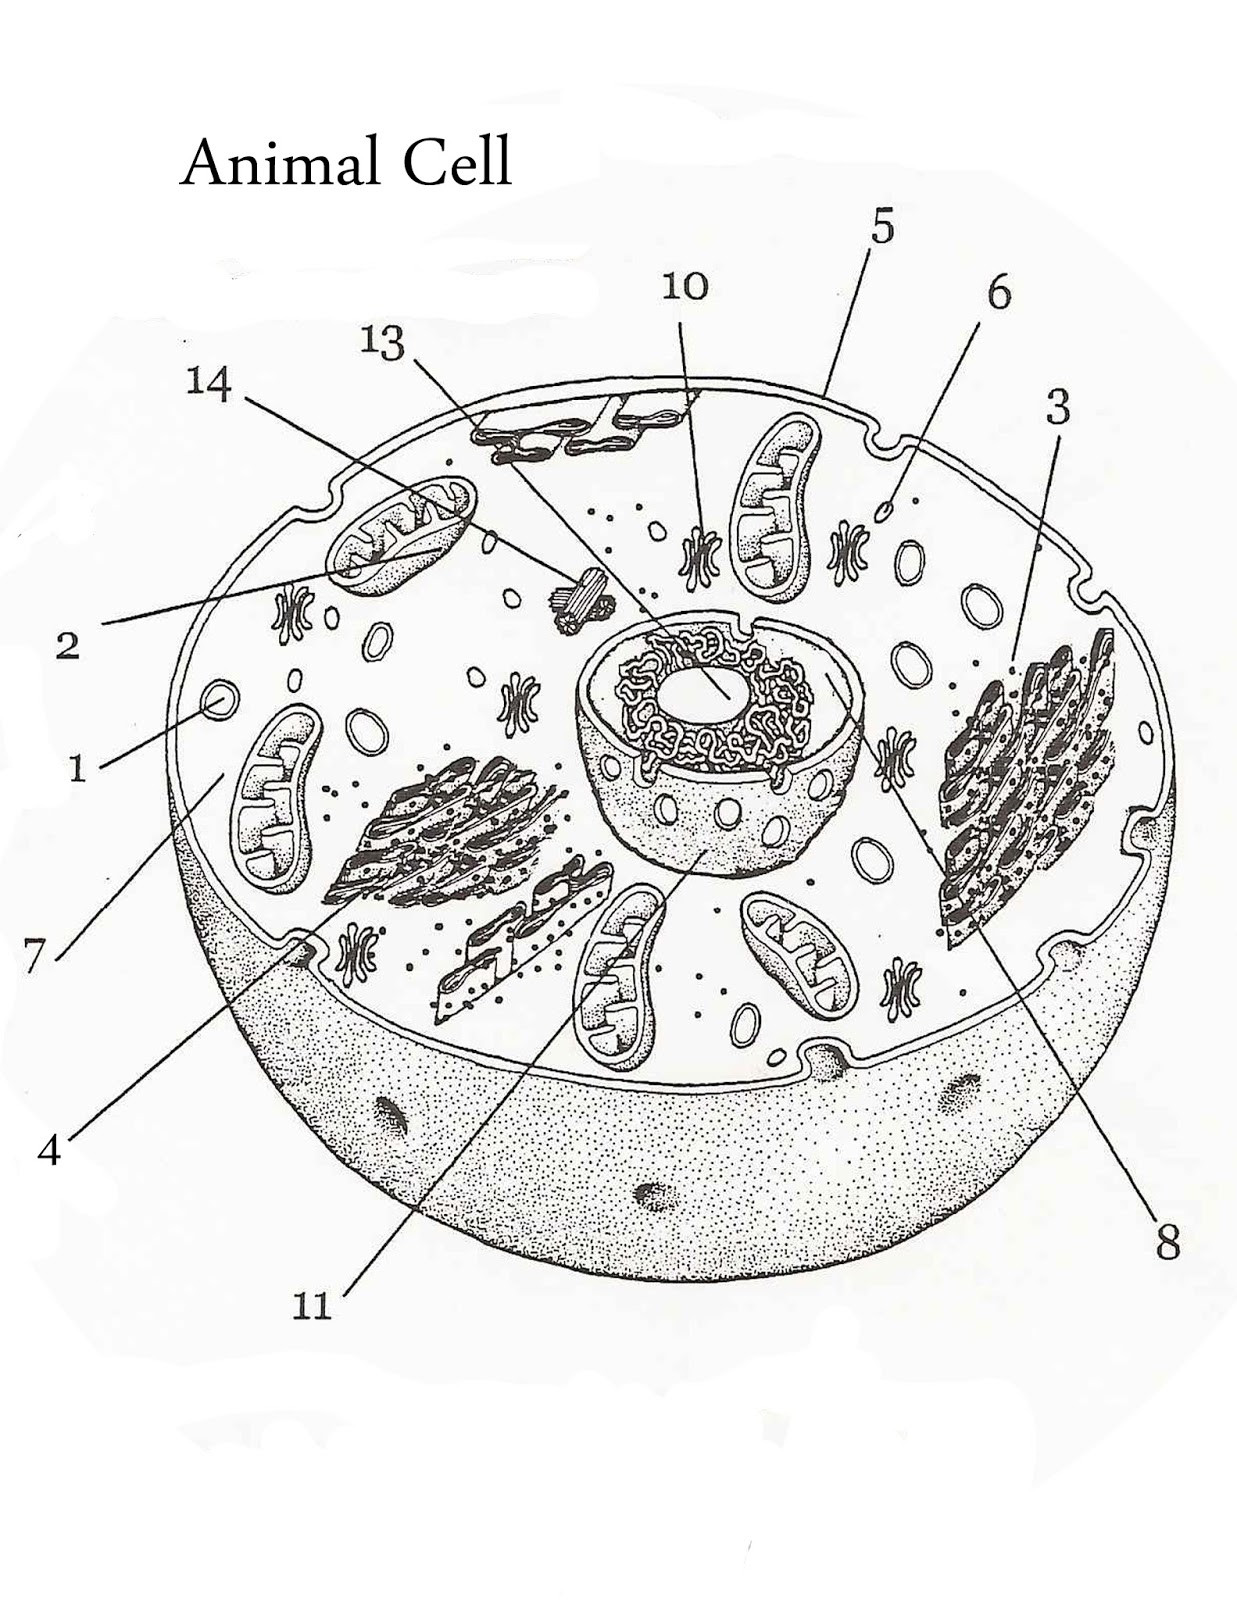 5th Grade Cell Worksheets Animal Cells Drawing at Getdrawings Free Identification